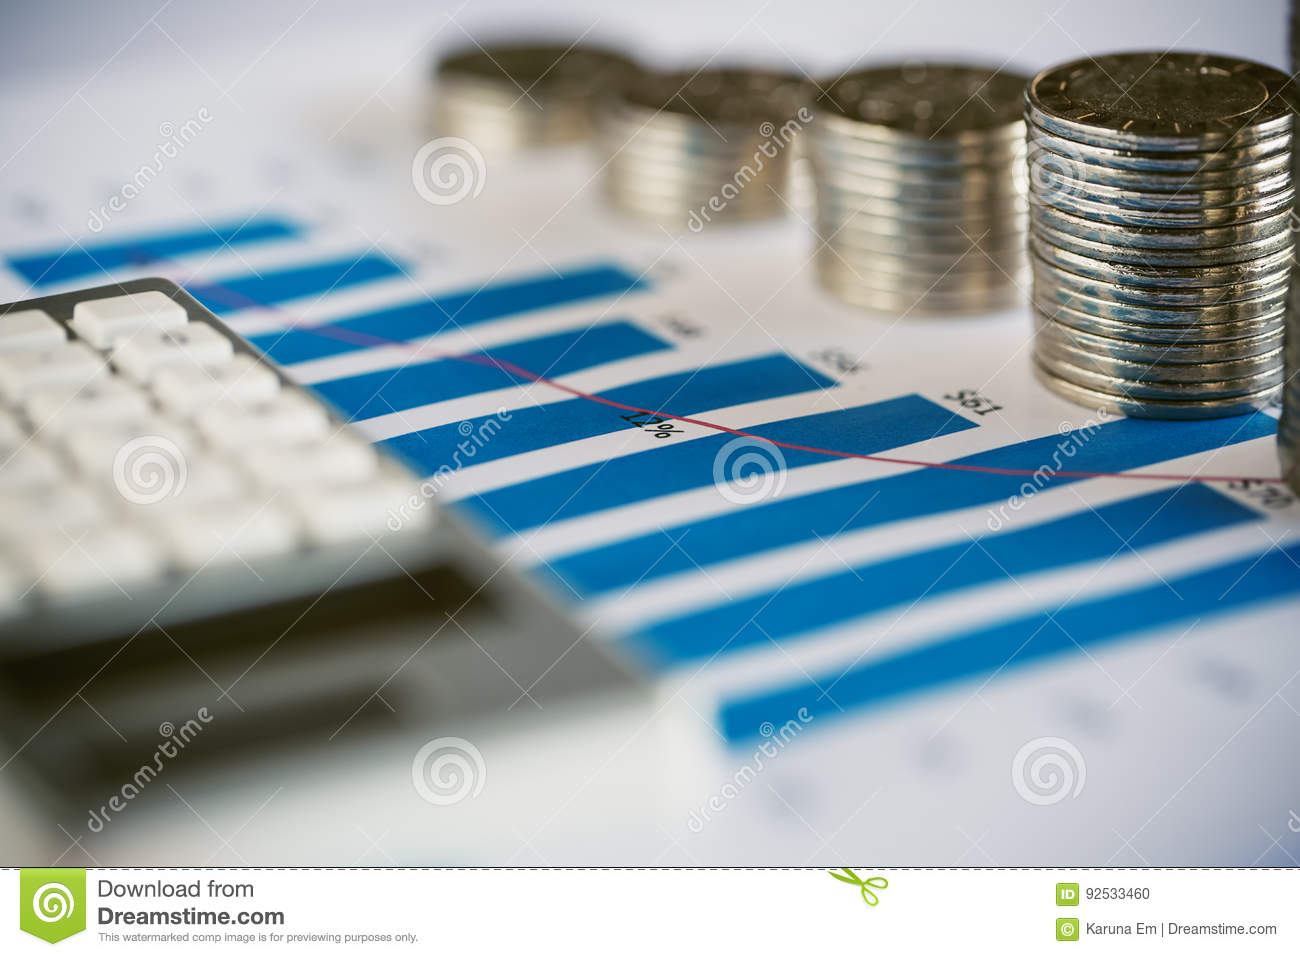 Stack of coin with bar graph stock photo image of progress global royalty free stock photo ccuart Gallery